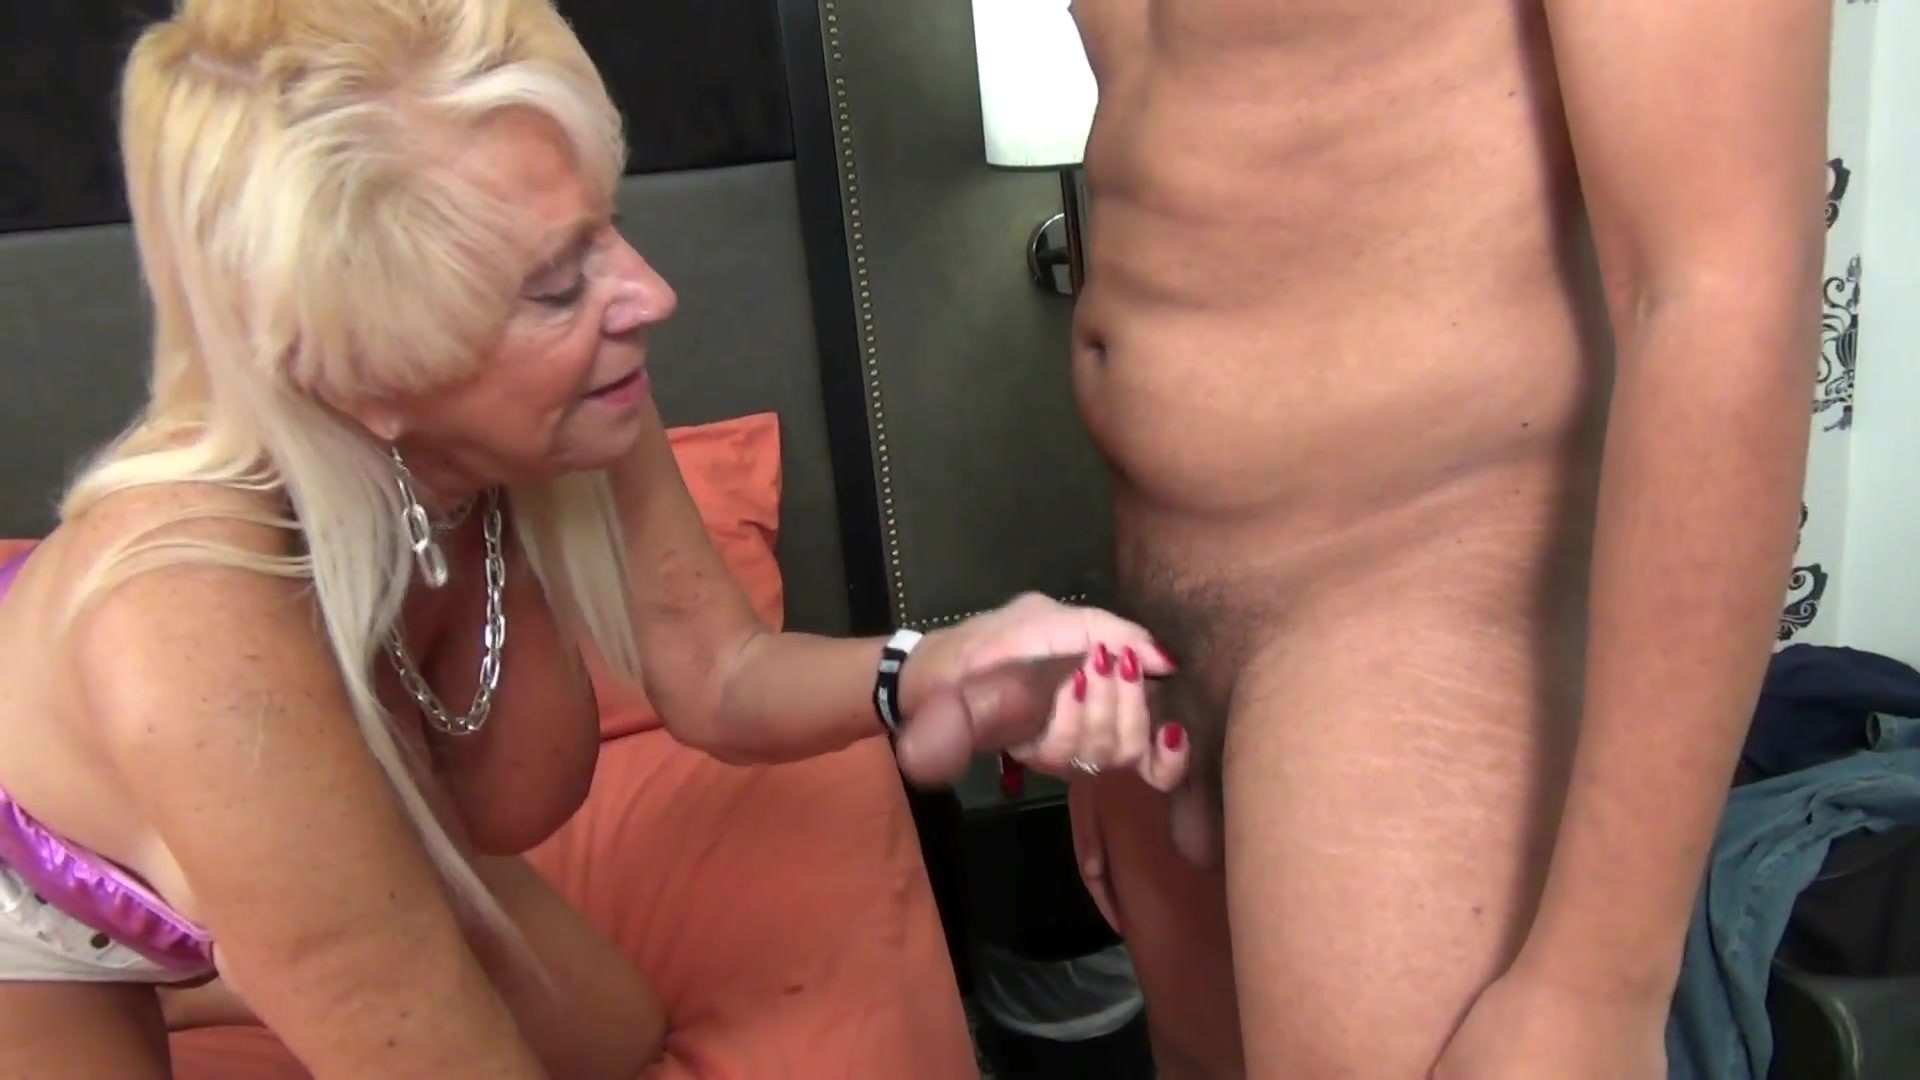 Milf has no plans for todayf70 - 2 6